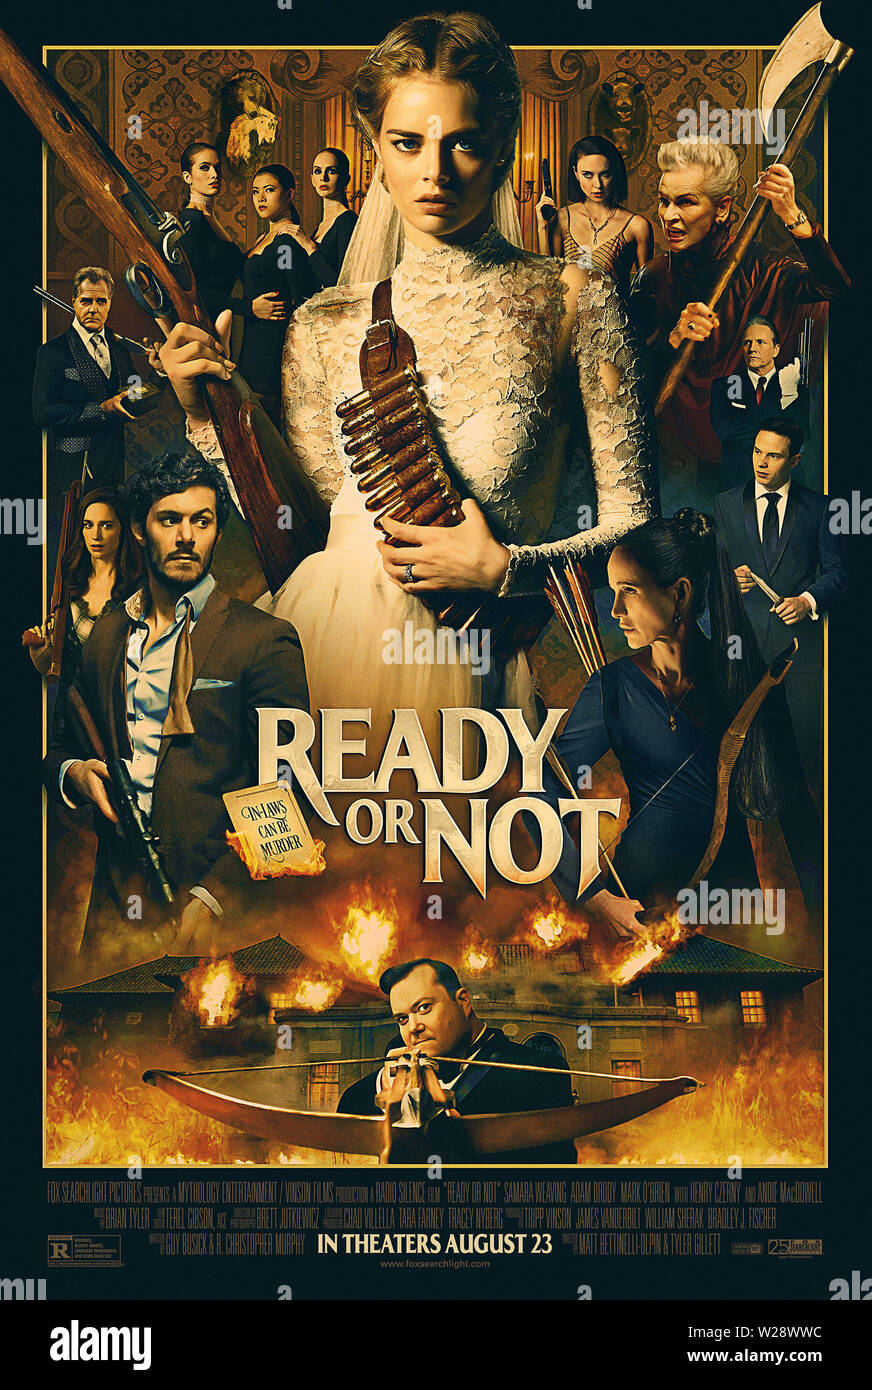 RELEASE DATE: August 23, 2019 TITLE: Ready Or Not STUDIO: Fox Searchlight Pictures DIRECTOR: Matt Bettinelli-Olpin, Tyler Gillett PLOT: A bride's wedding night takes a sinister turn when her eccentric new in-laws force her to take part in a terrifying game. STARRING: SAMARA WEAVING as Grace poster art. (Credit Image: © Fox Searchlight Pictures/Entertainment Pictures) Stock Photo